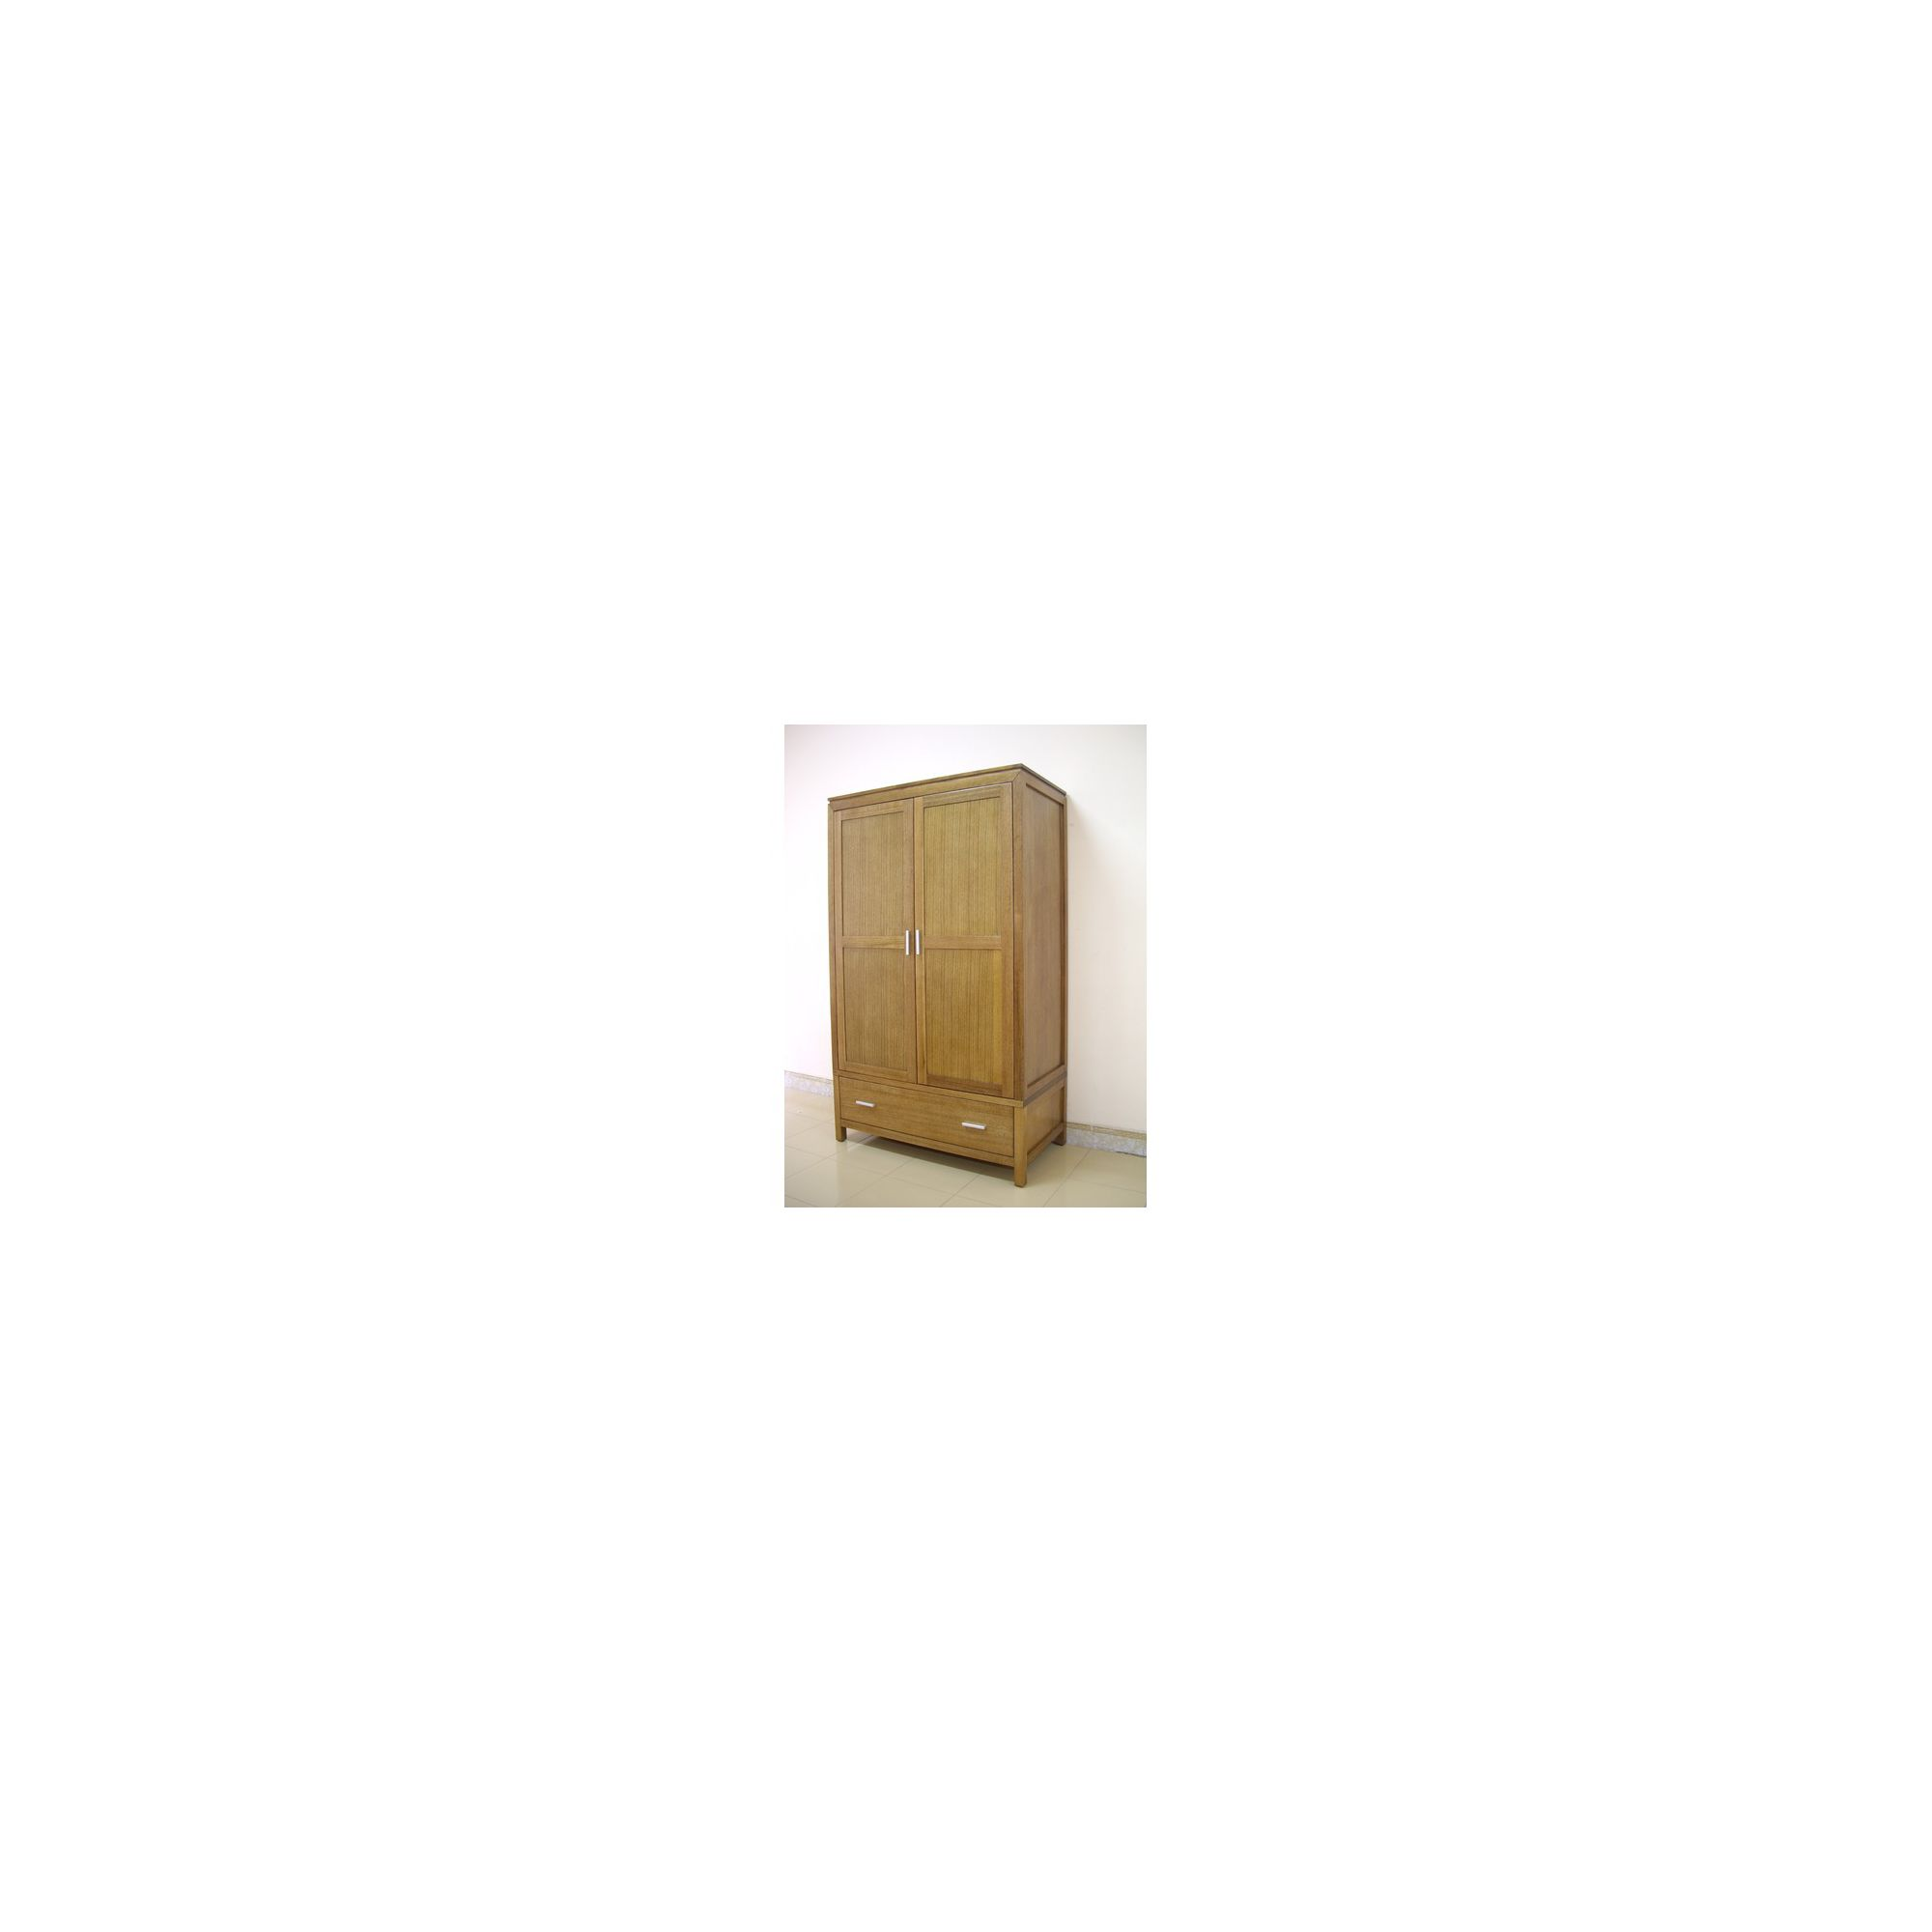 Wildwood Charlotte 2 Door Wardrobe in Eucalyptus at Tesco Direct